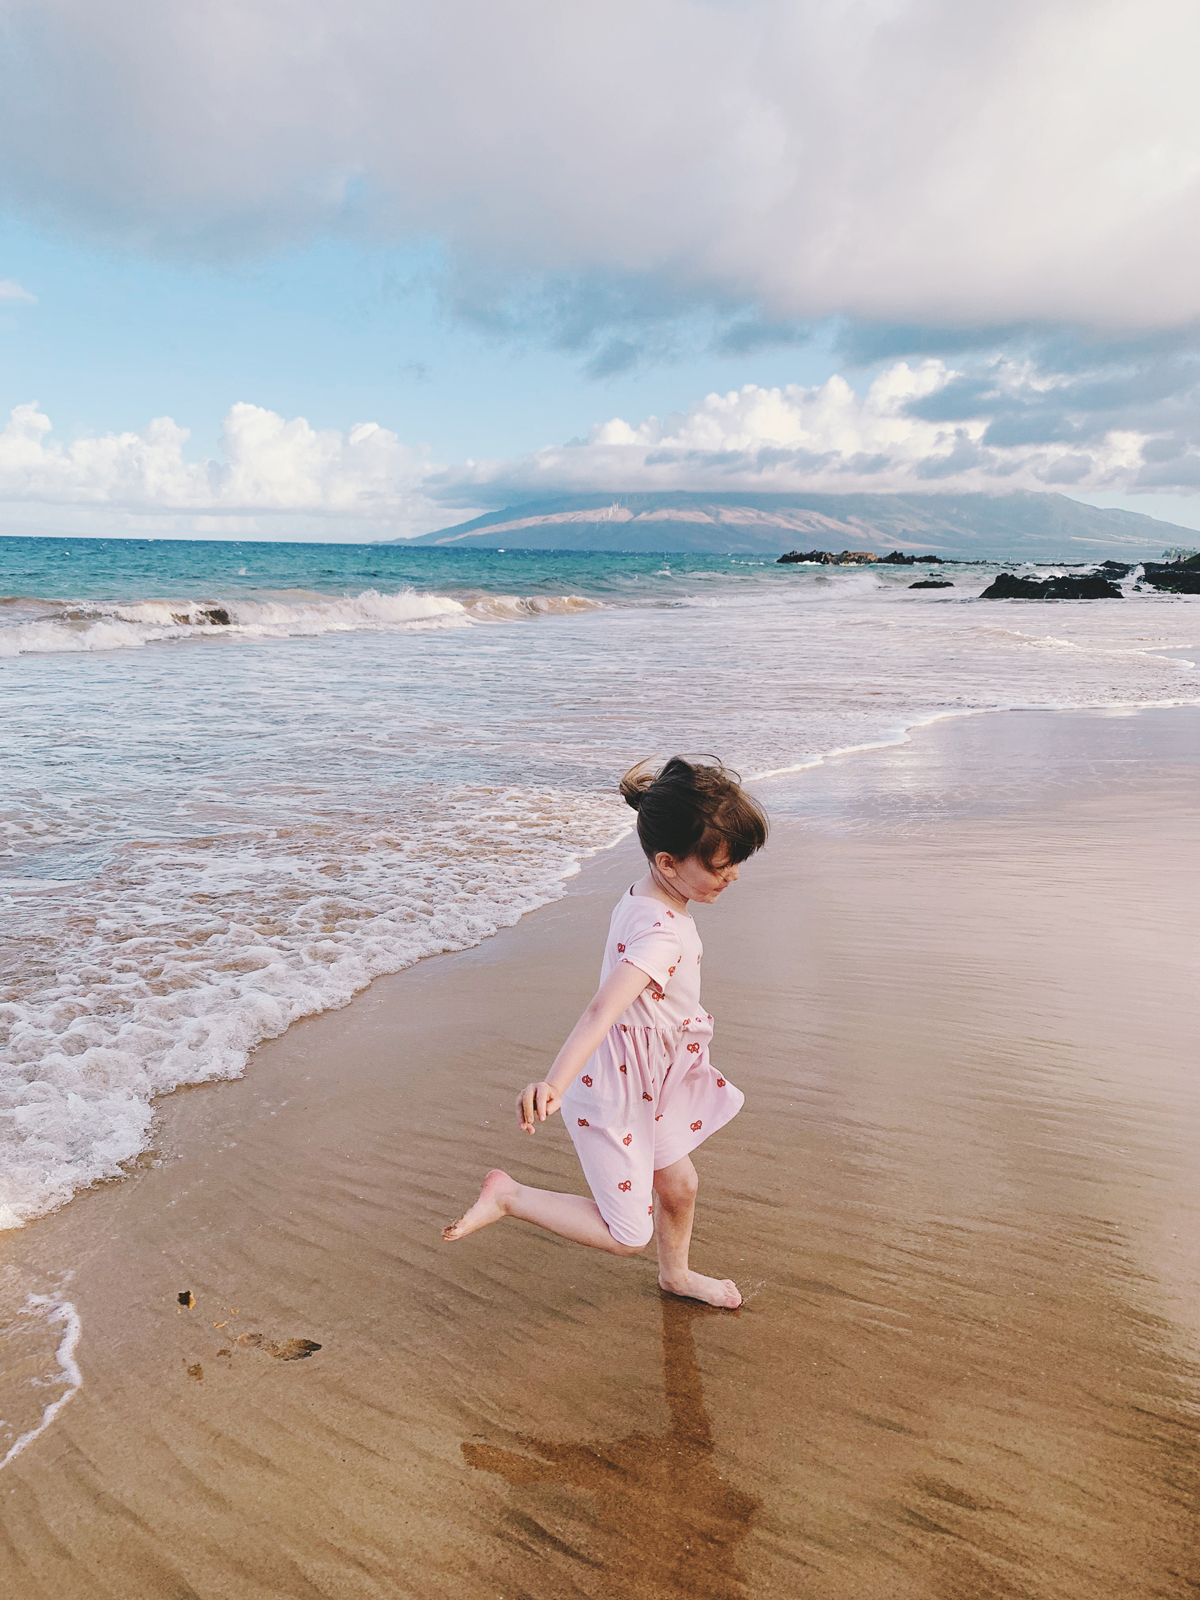 walkinlove_mauihawaii-48.jpg